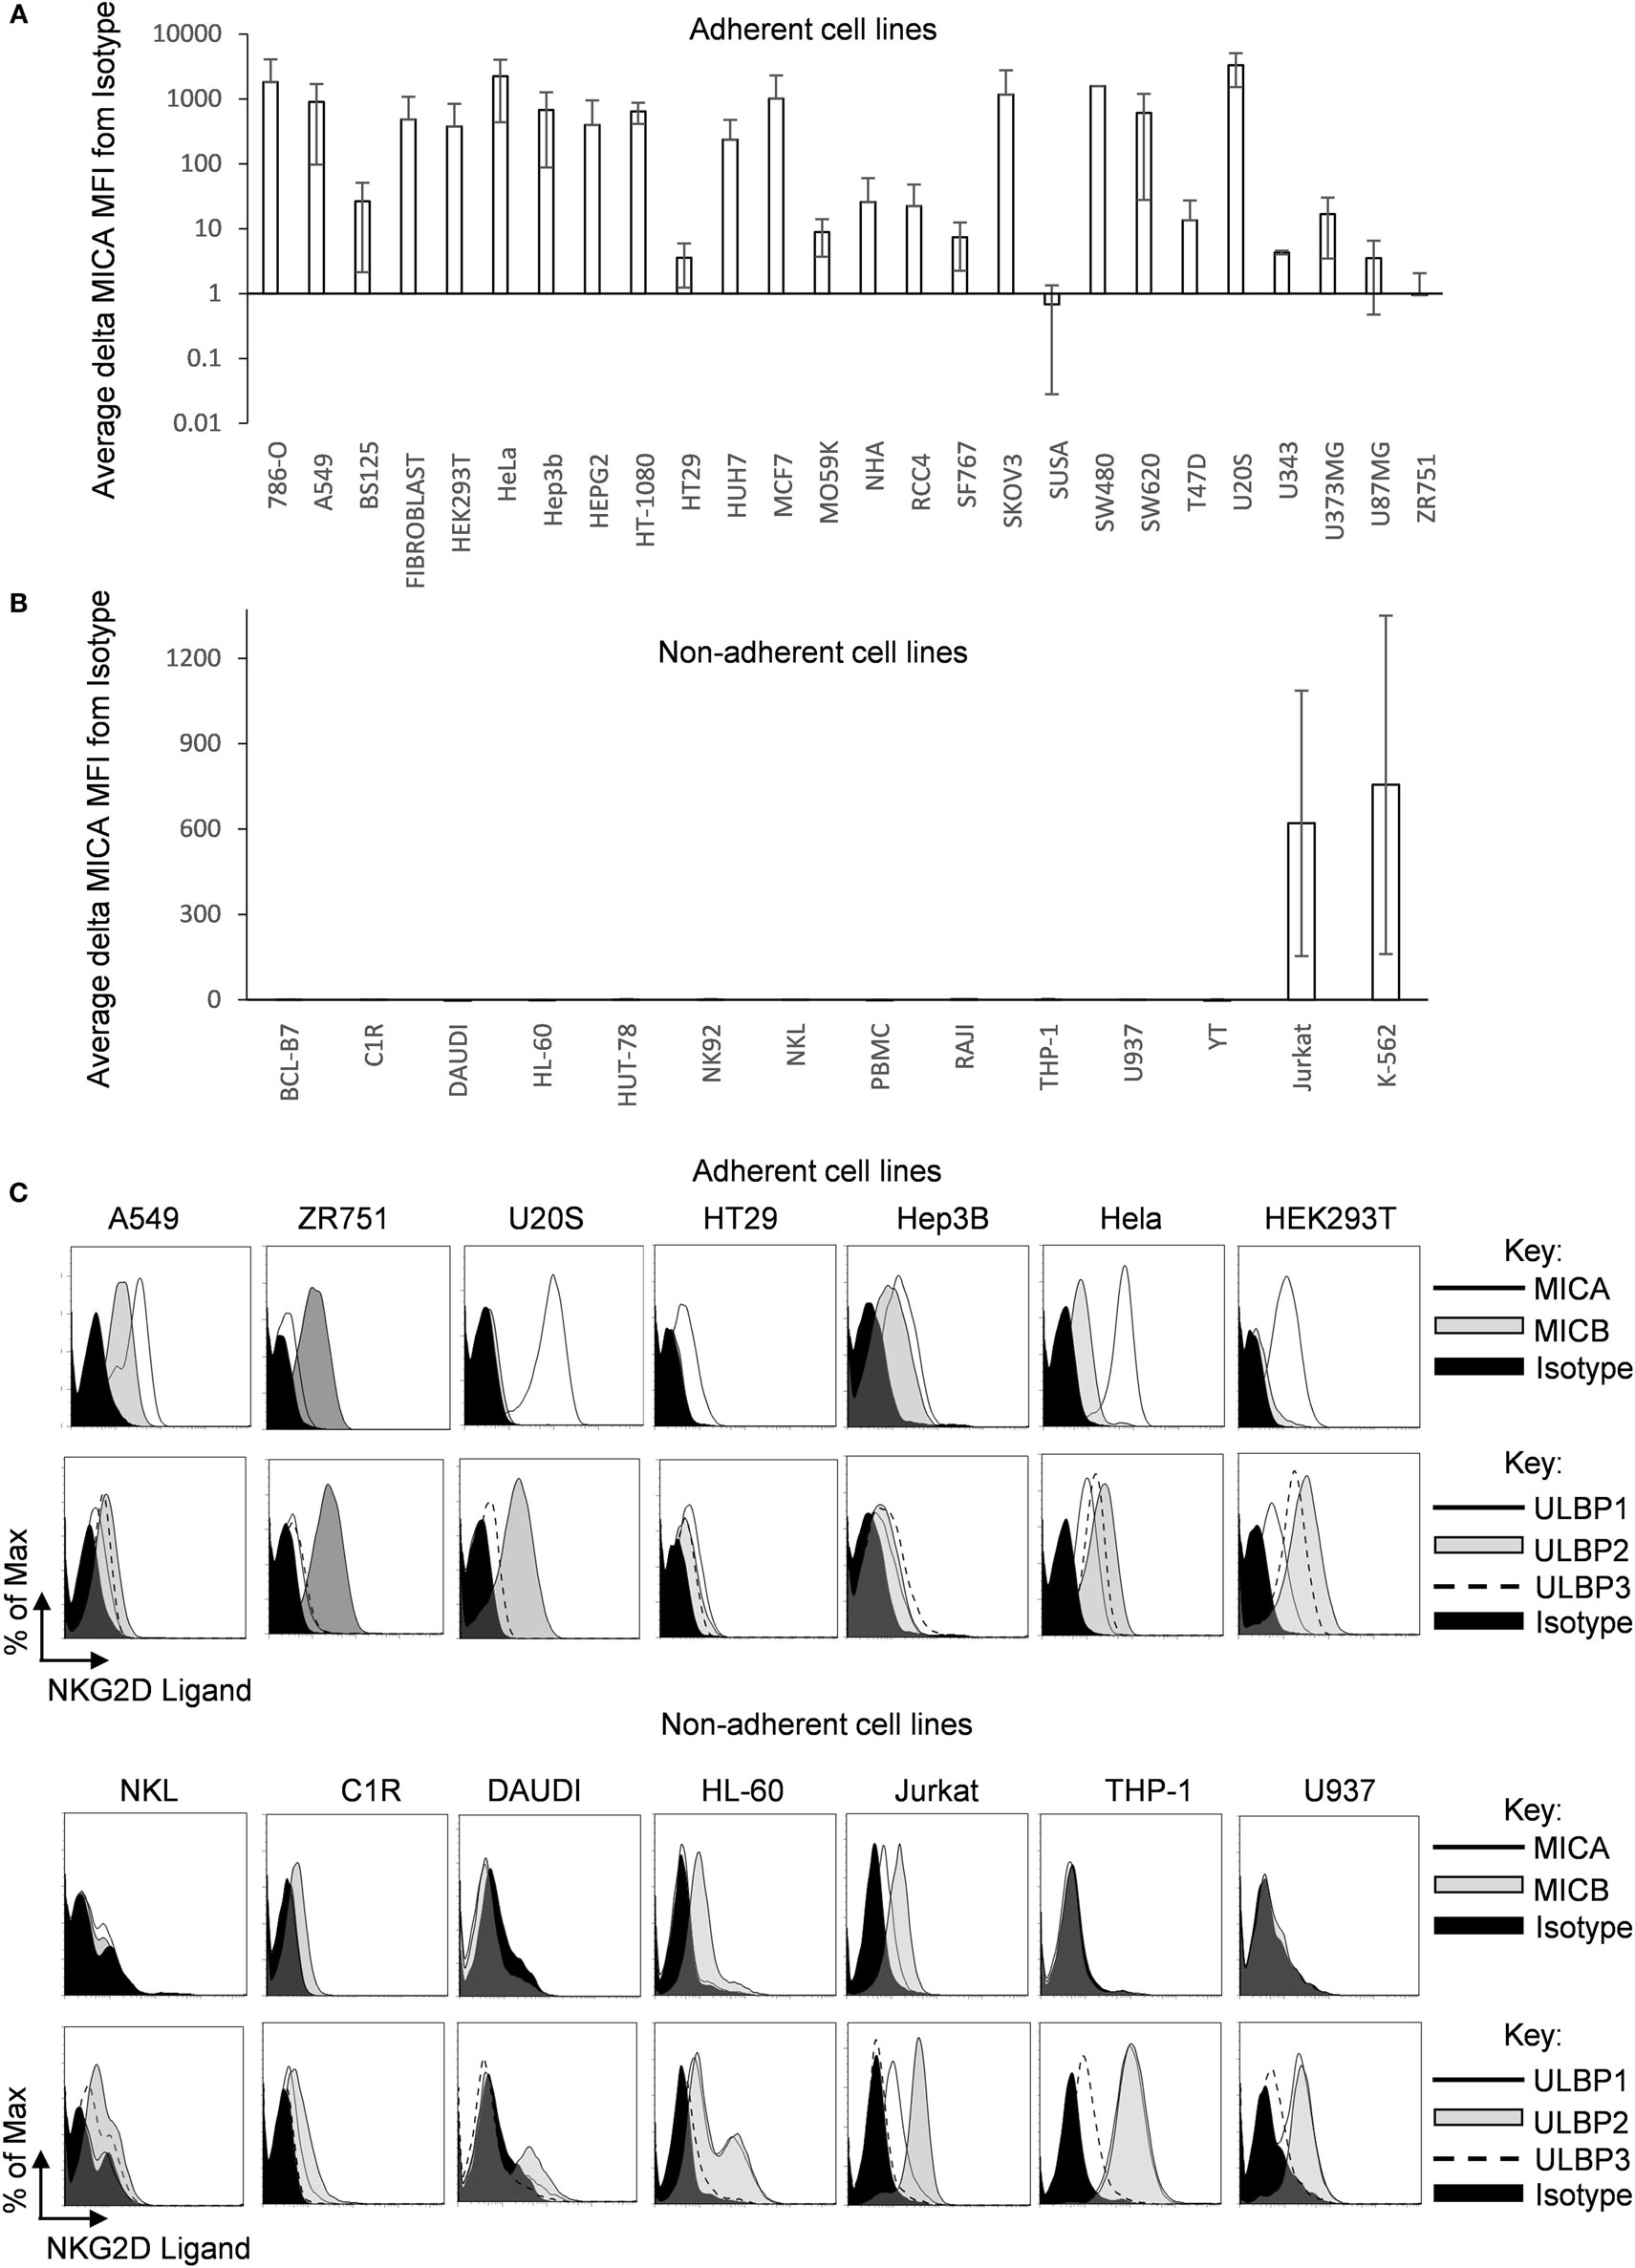 Frontiers | MICA Expression Is Regulated by Cell Adhesion and